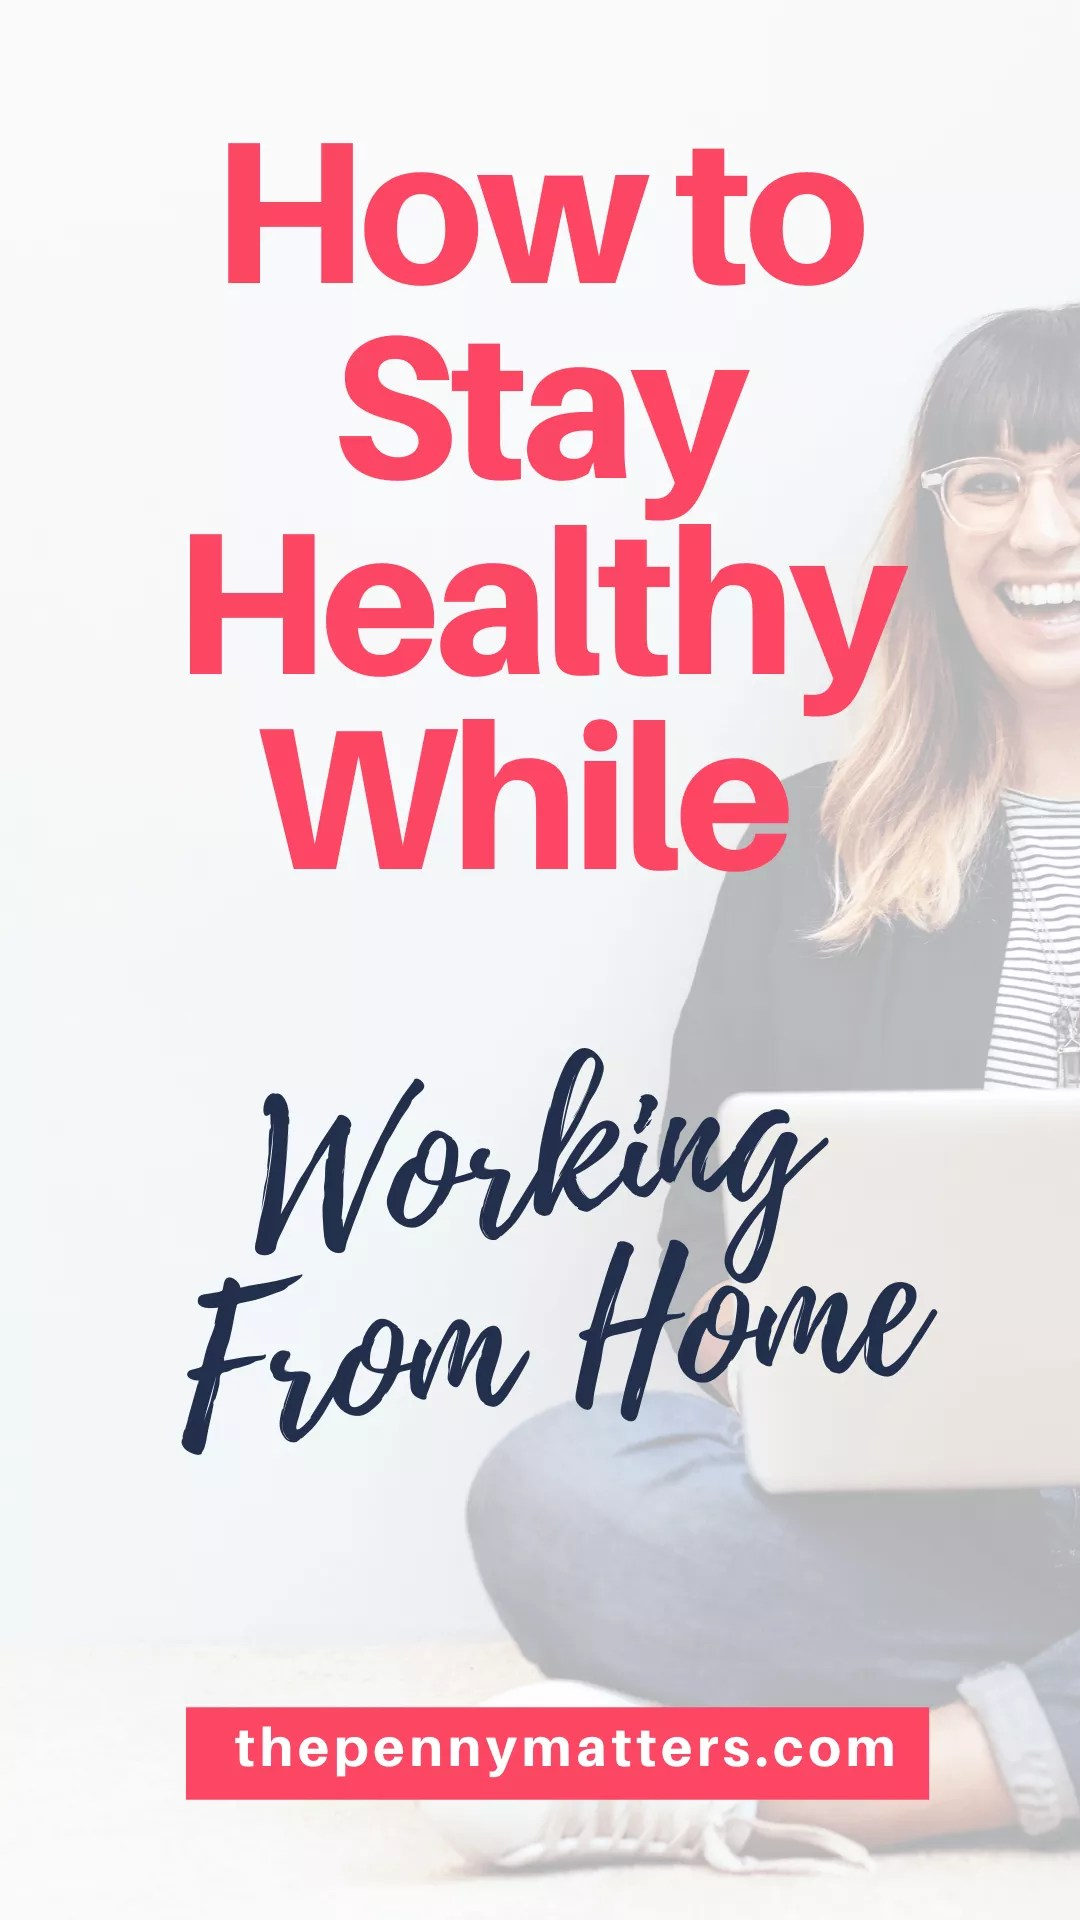 7 brilliant tips on how to stay healthy when working from home